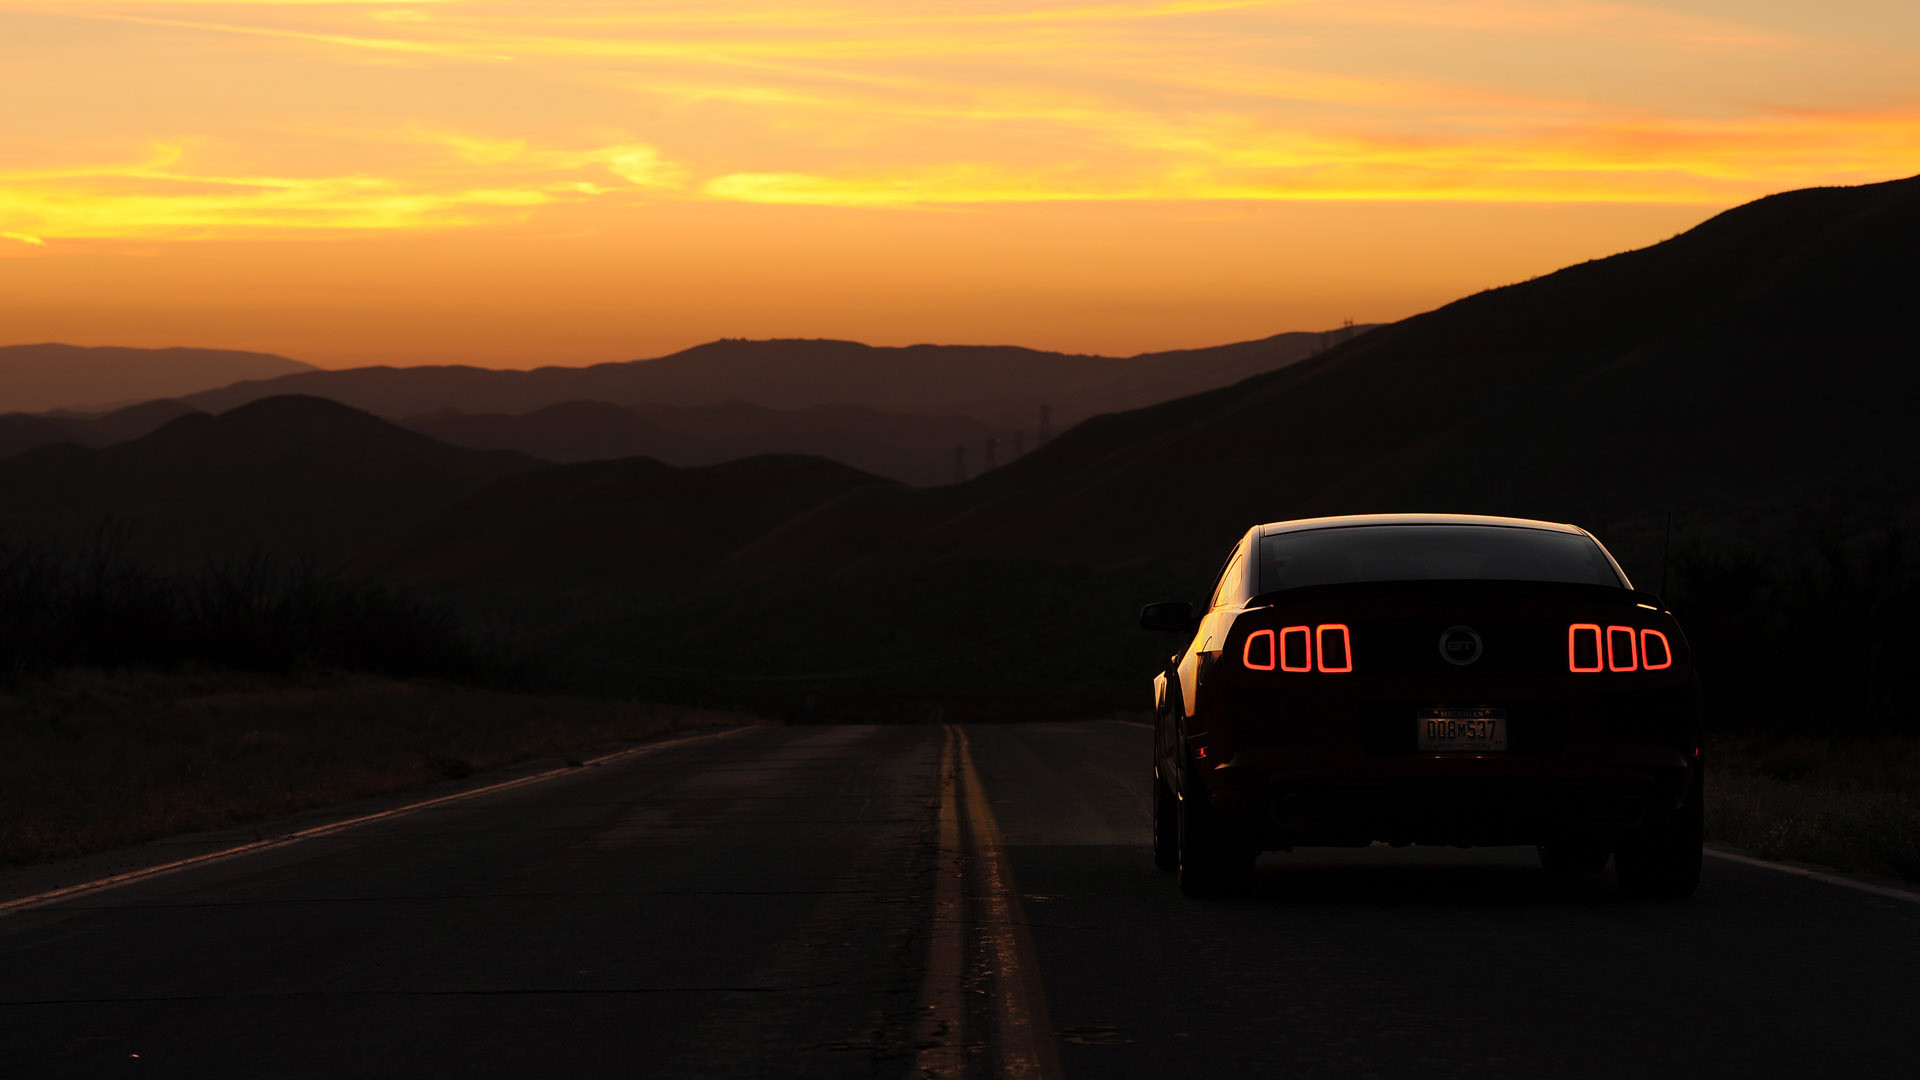 mustang desktop wallpaper (71+ images)